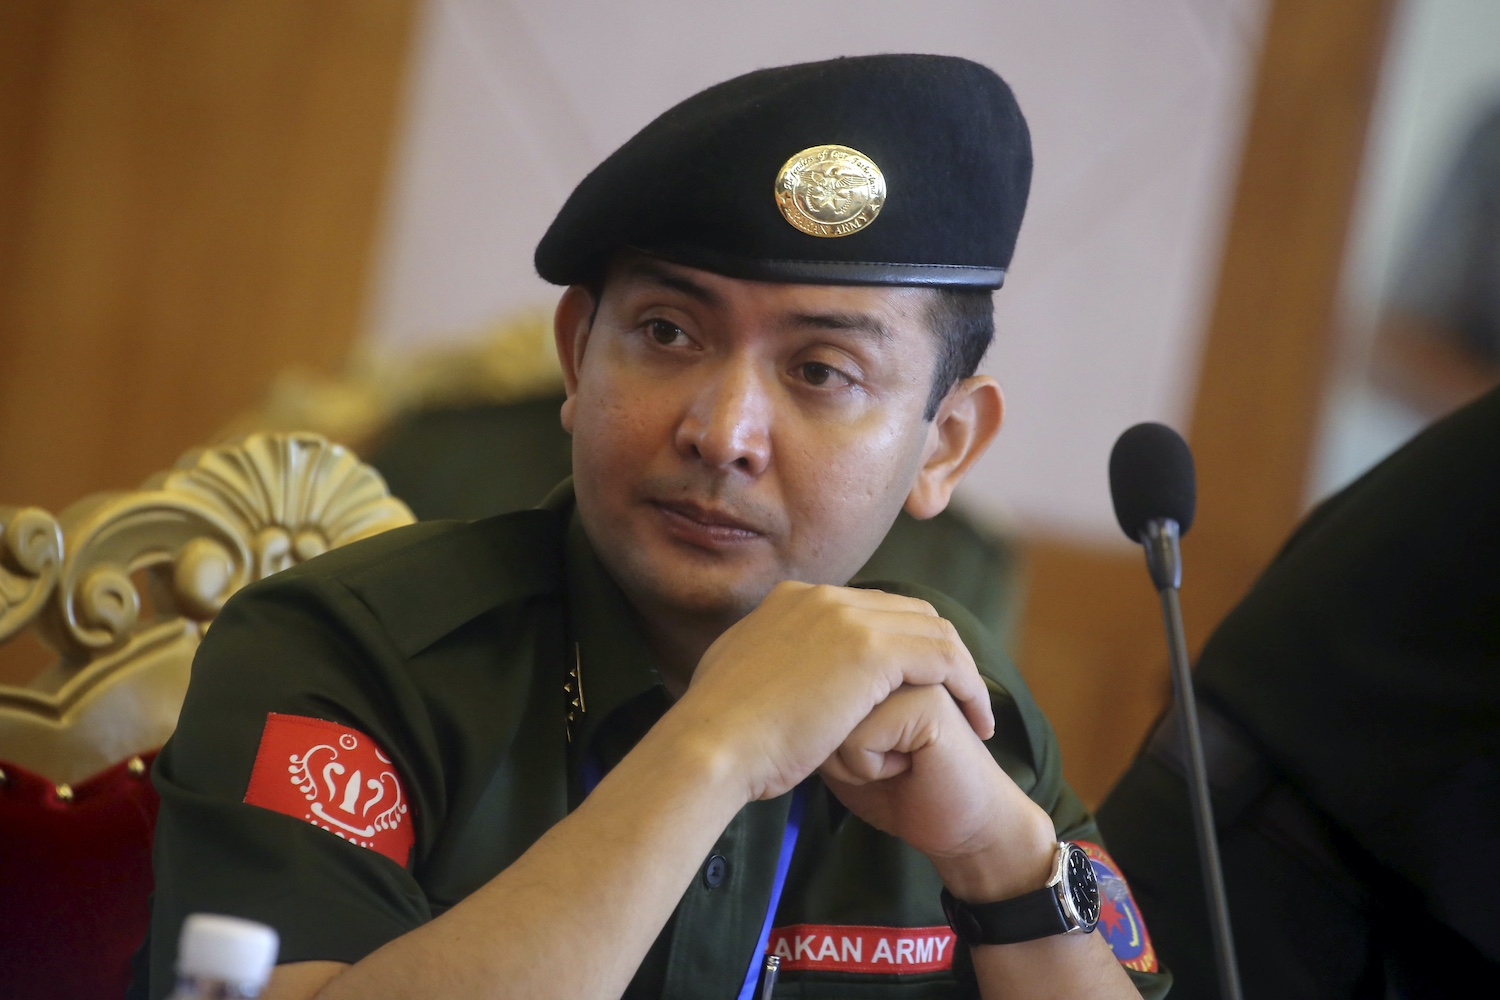 Tun Myat Naing is the commander-in-chief of the Arakan Army, which has been fighting the Myanmar army in Rakhine state. (Reuters file photo)